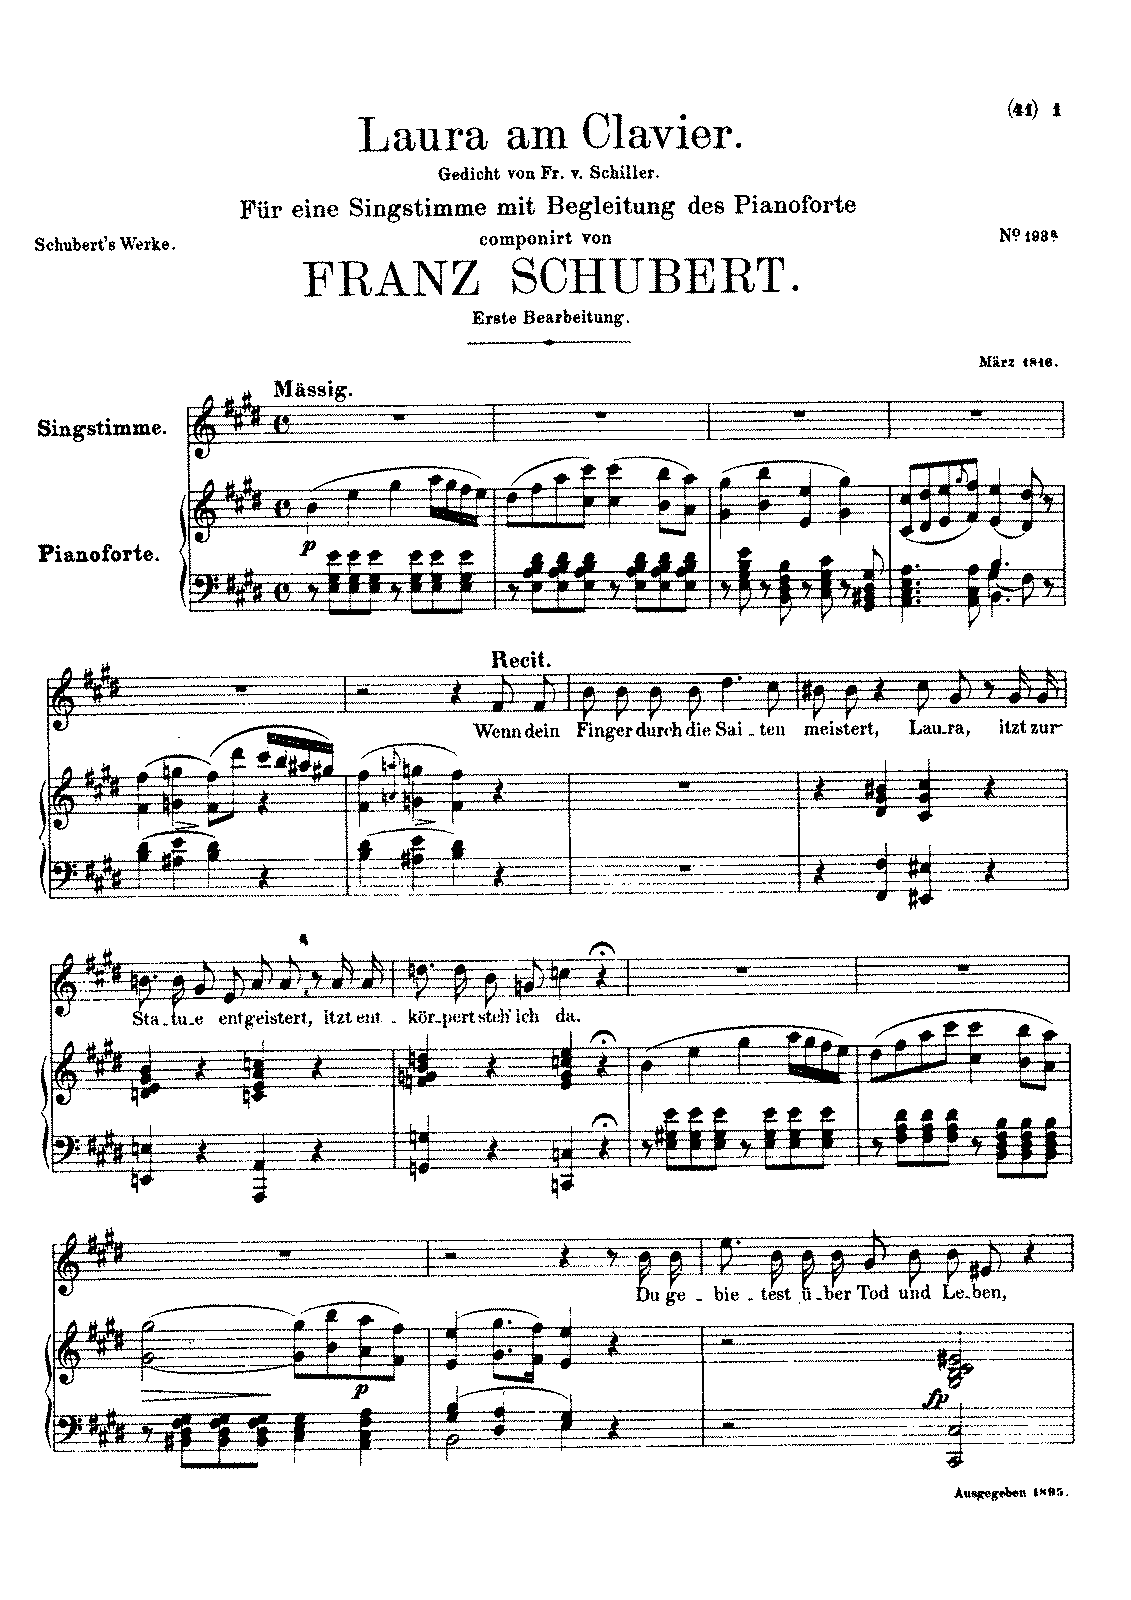 SchubertD388 Laura am Klavier 1st version.pdf